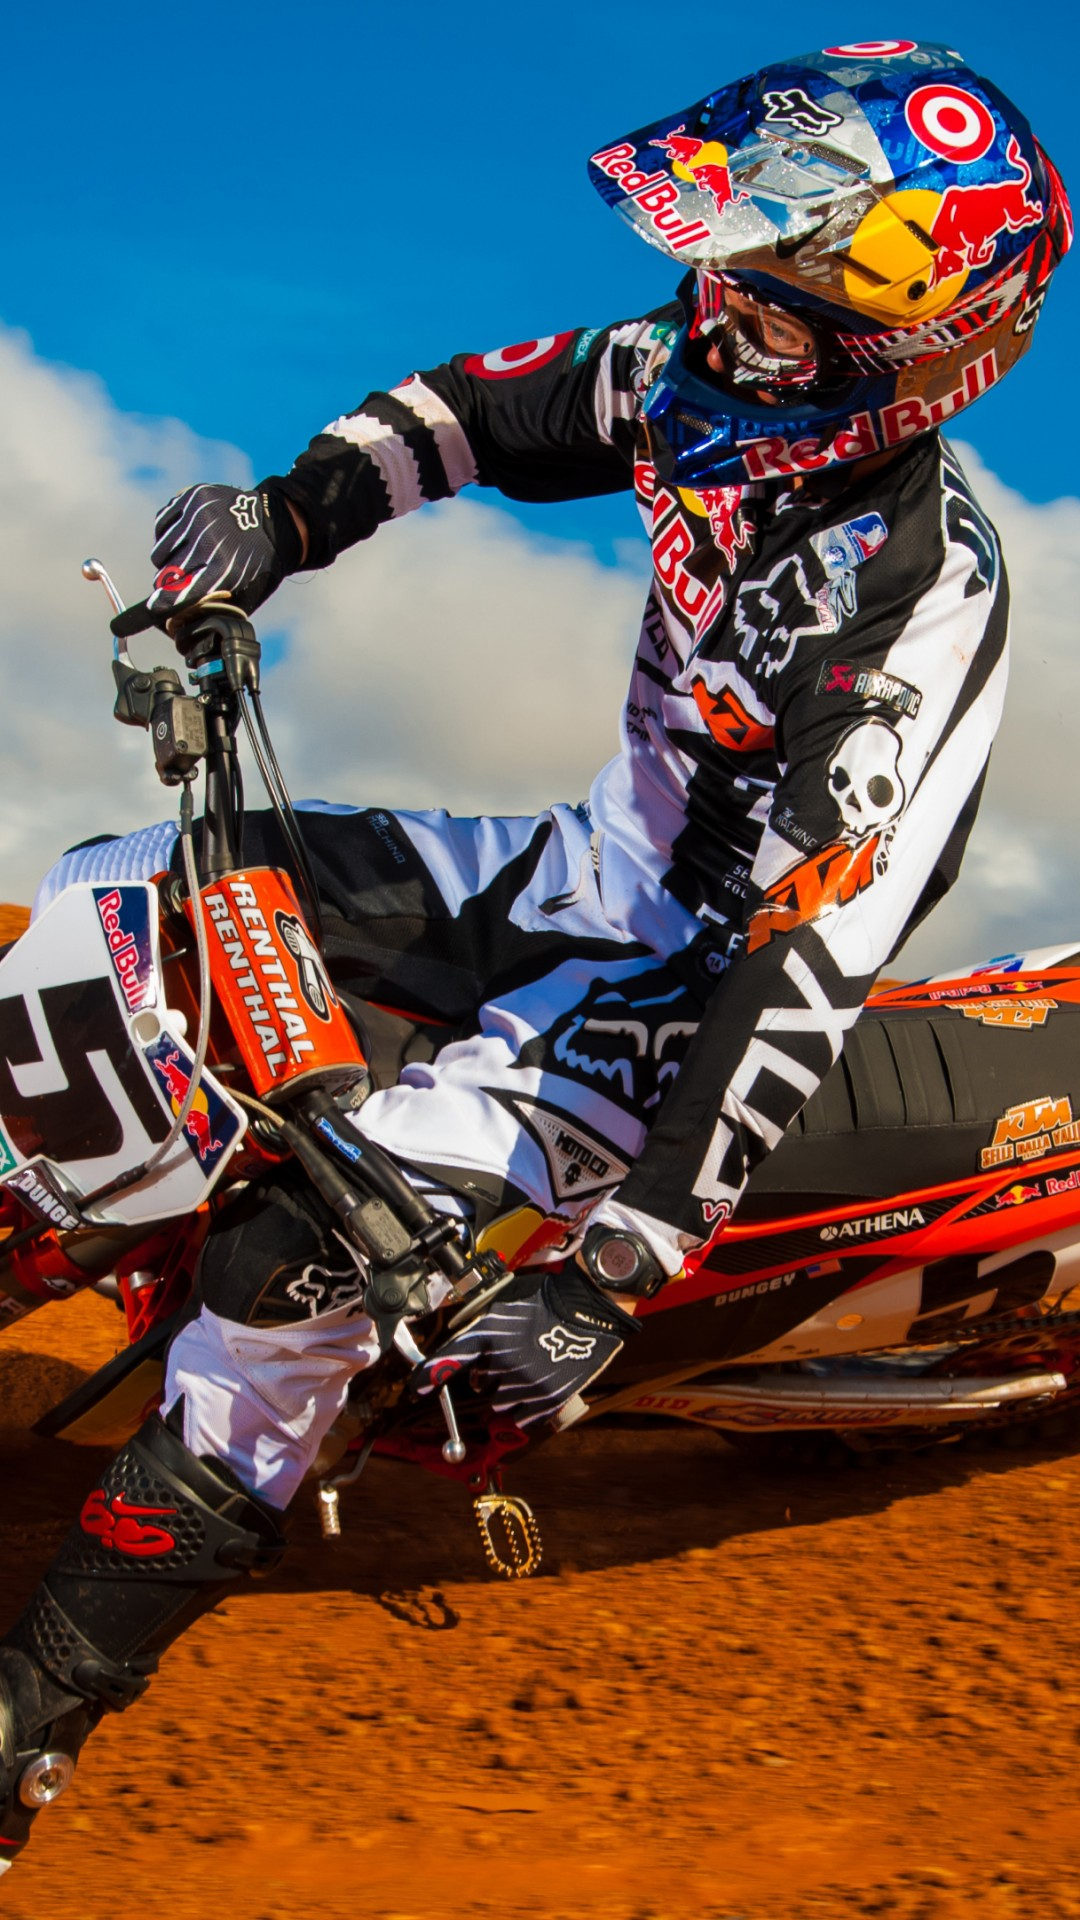 Download Cool Quotes Wallpapers Wallpaper Ryan Dungey Motocross Fmx Rider Sport 11208